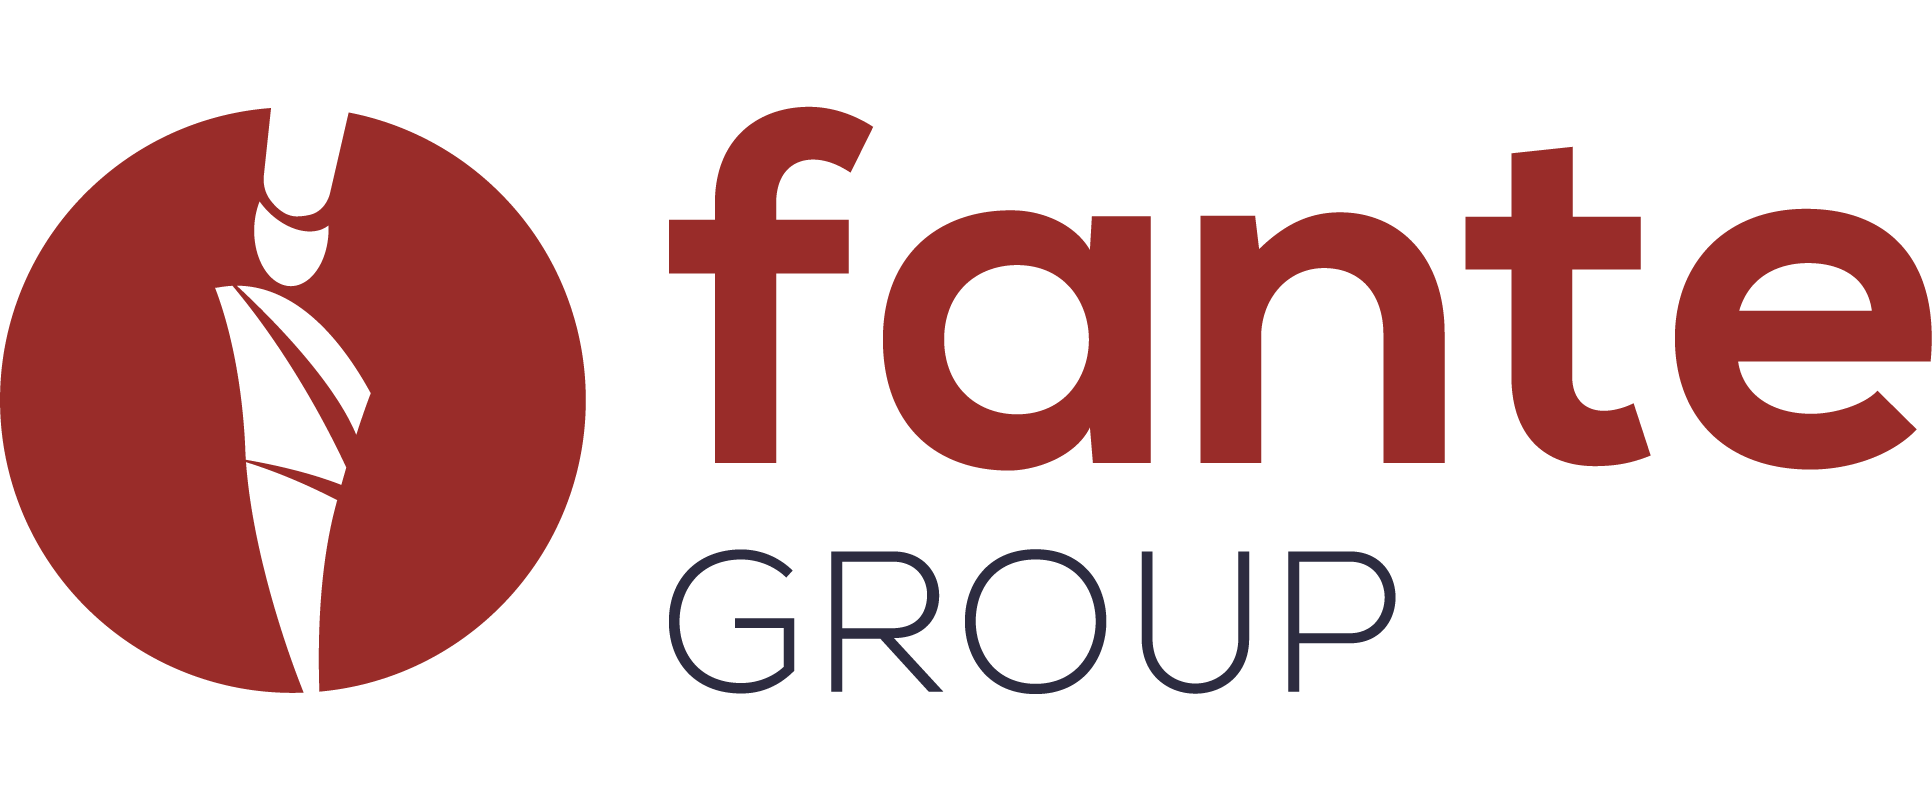 logo fante group 4